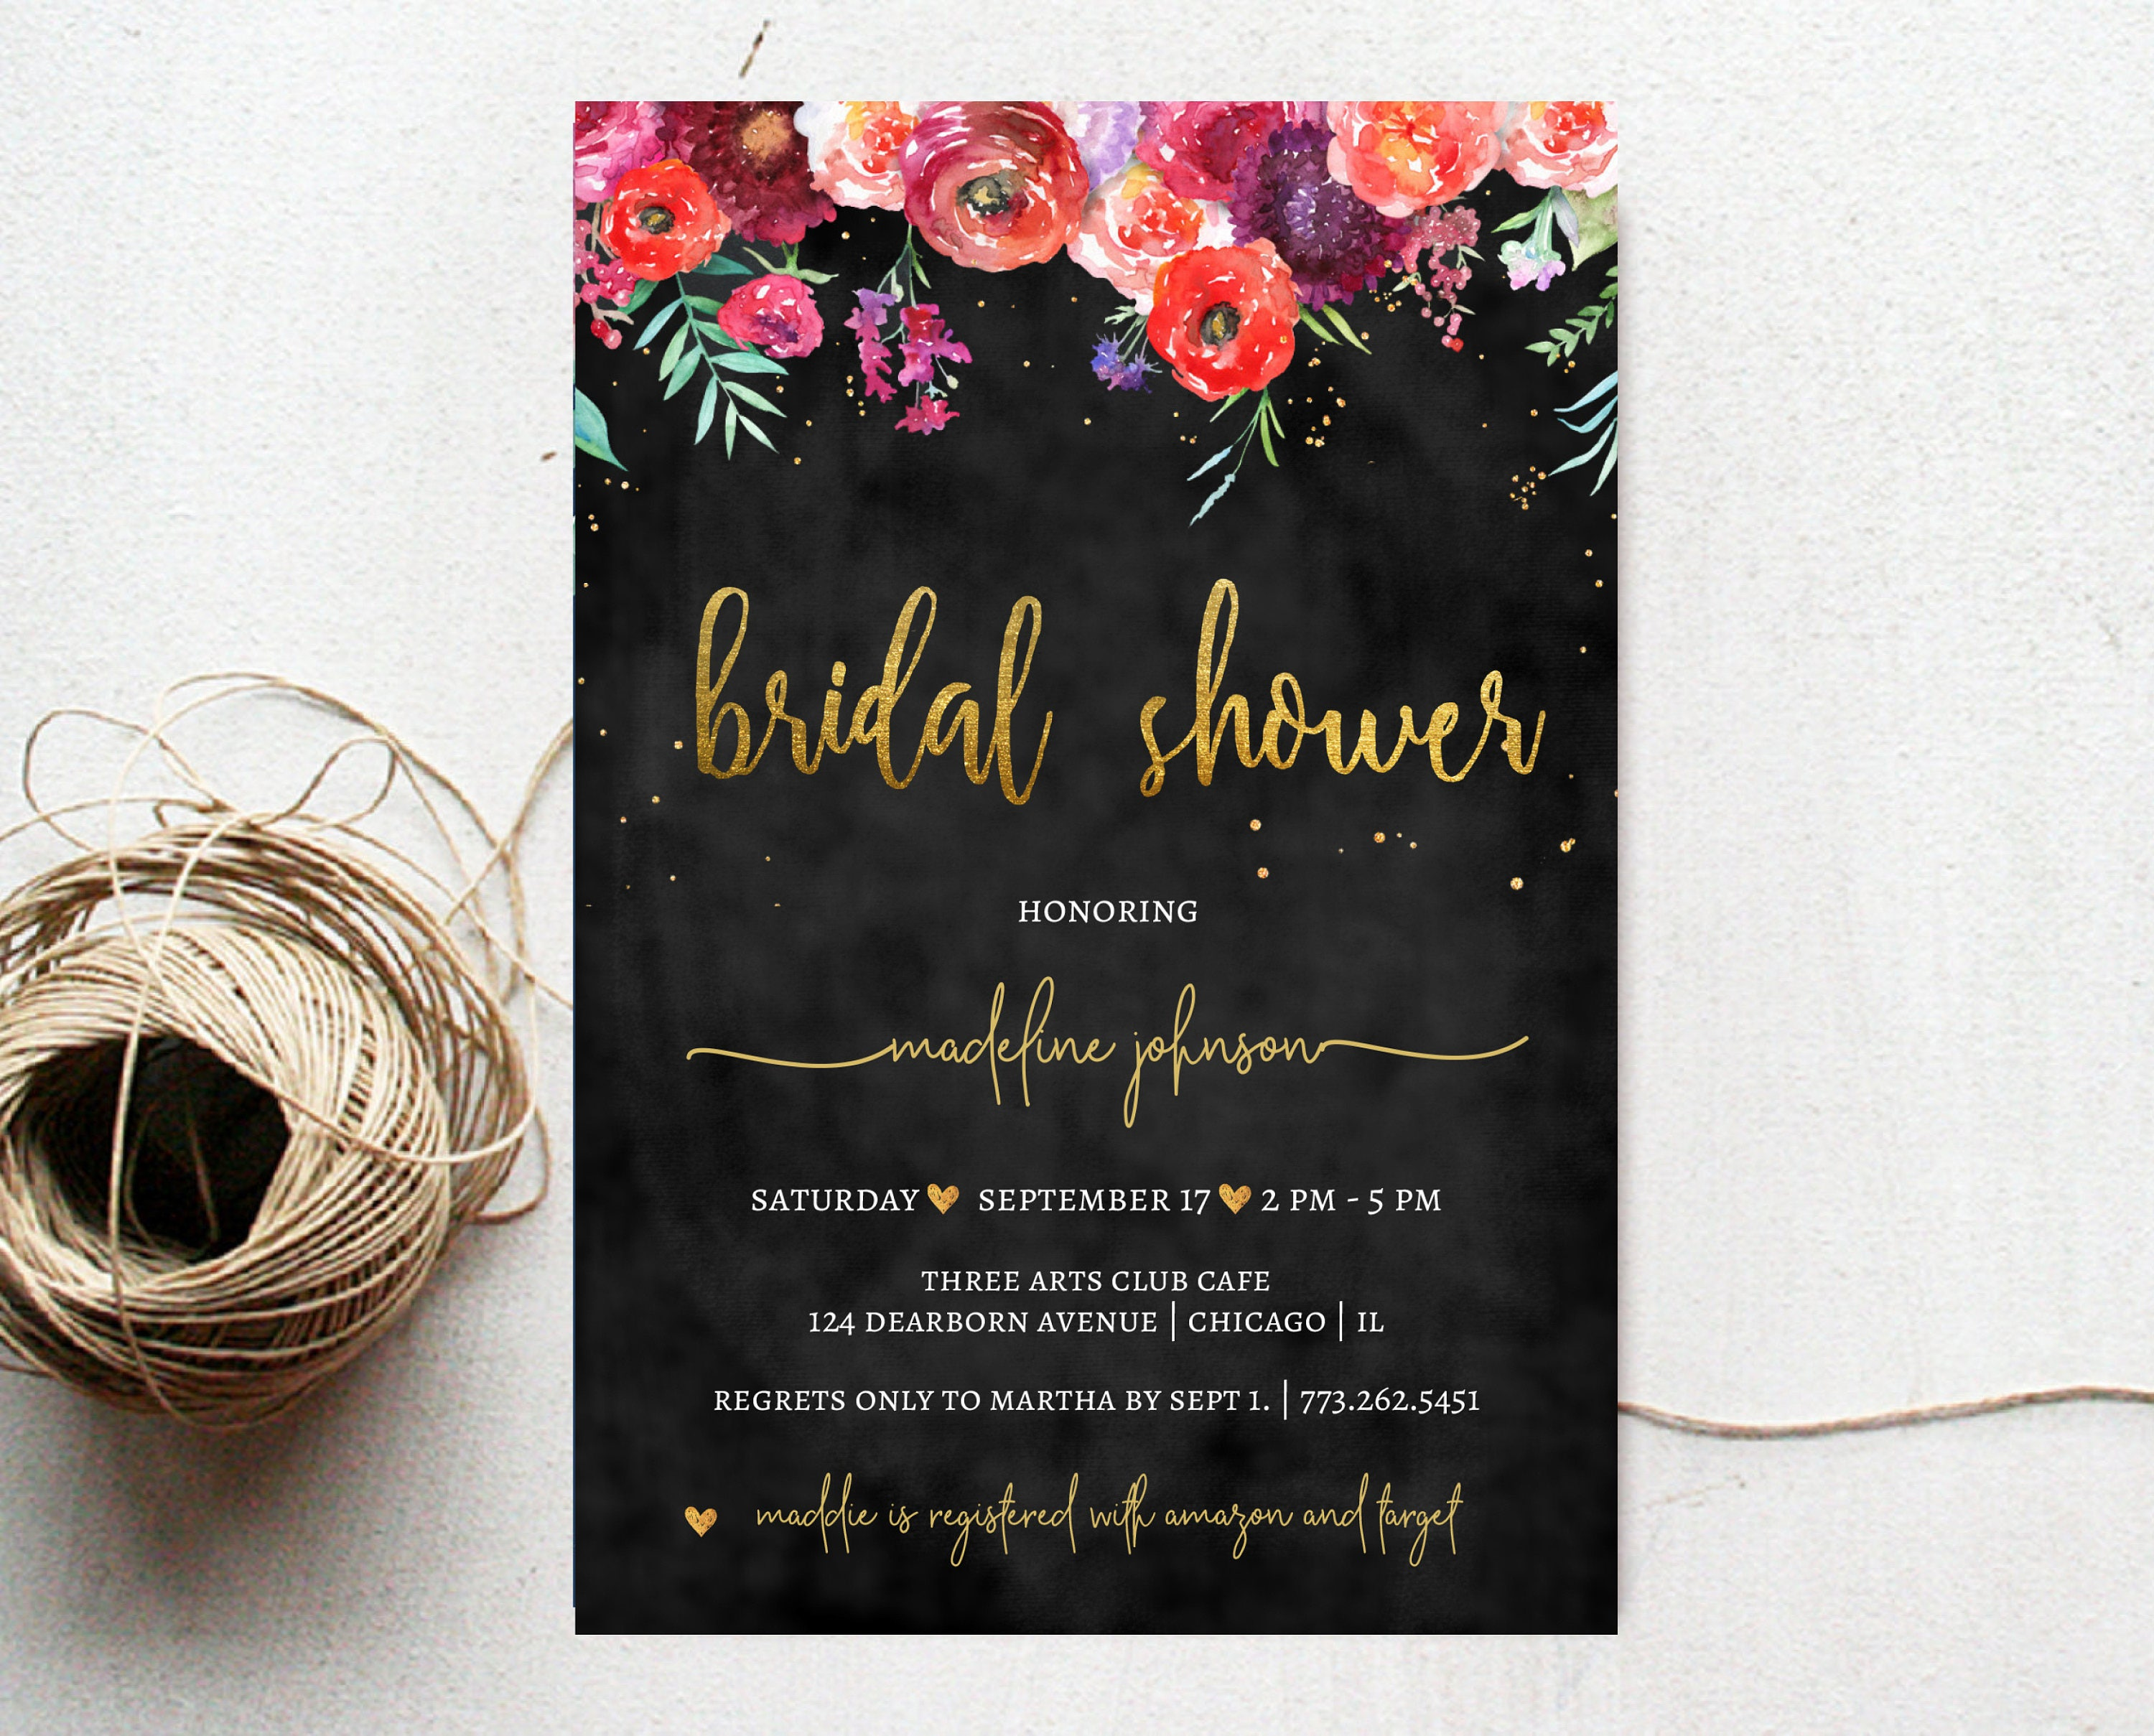 Printable bridal shower invitation winter wedding floral printable bridal shower invitation winter wedding floral chalkboard boho gold invite filmwisefo Choice Image